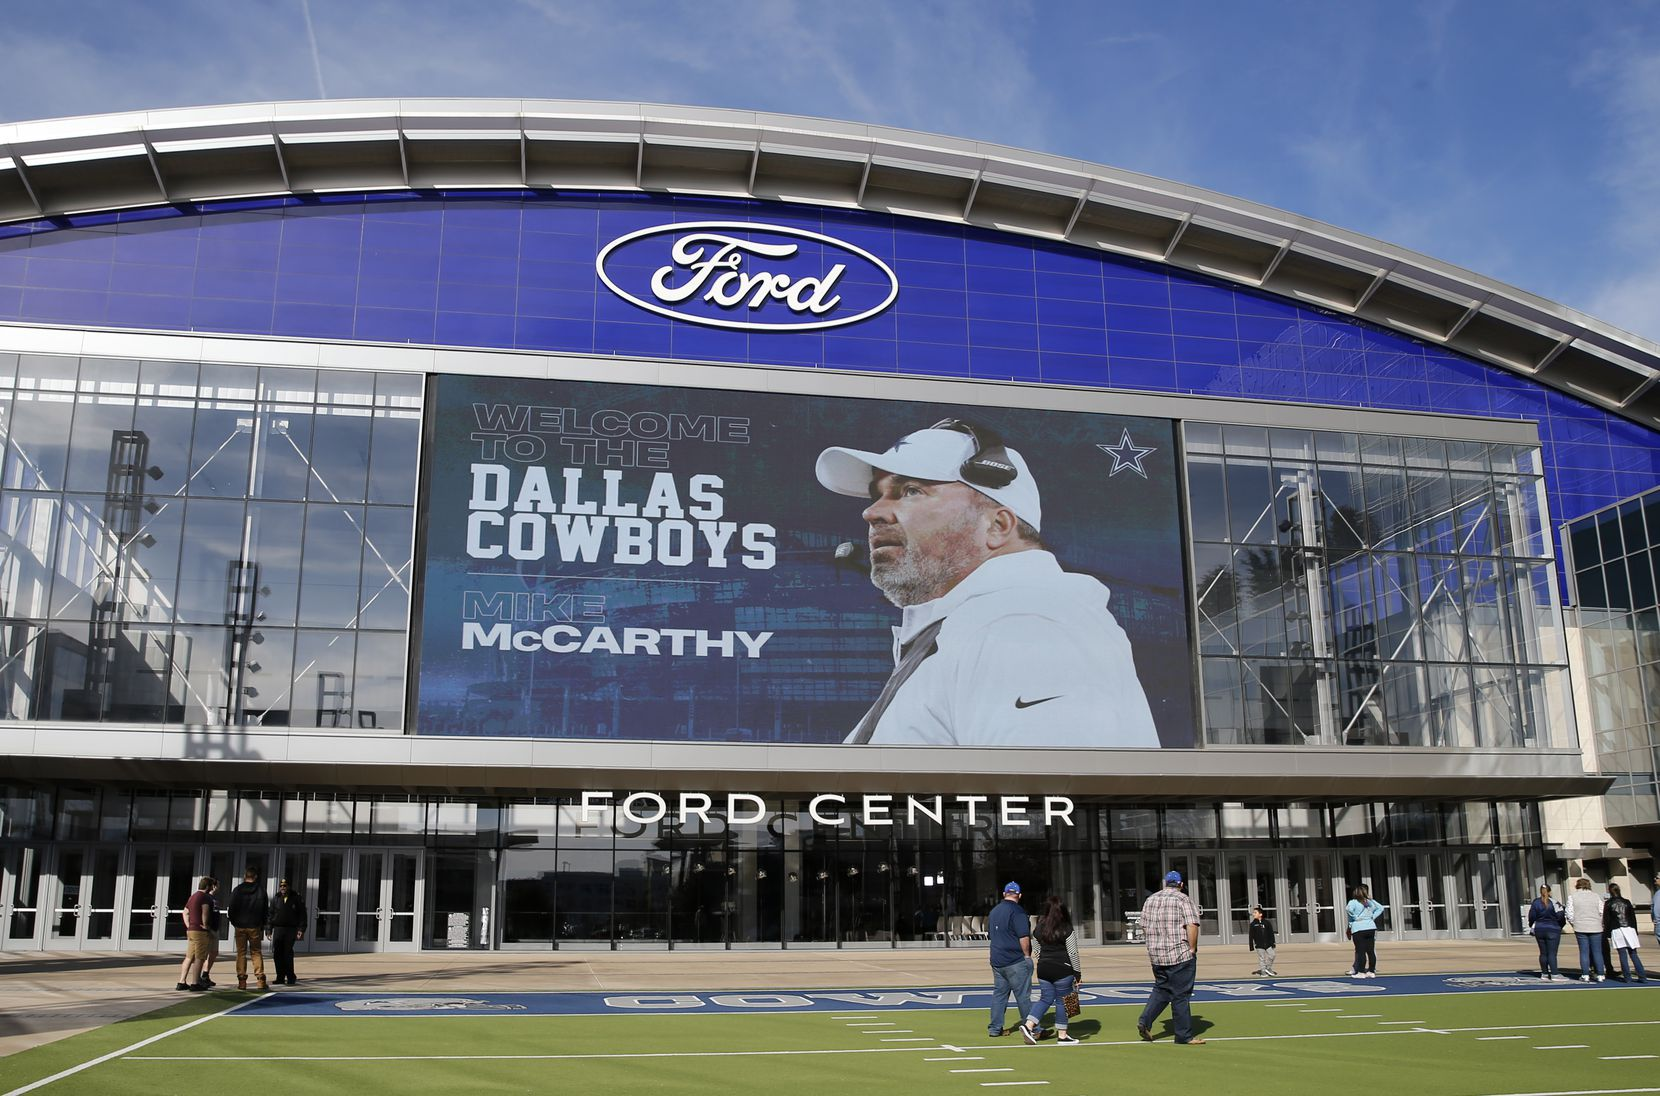 Dallas Cowboys new head coach Mike McCarthy image is displayed on the video board outside the Ford Center at The Star in Frisco, on Wednesday, January 8, 2020.